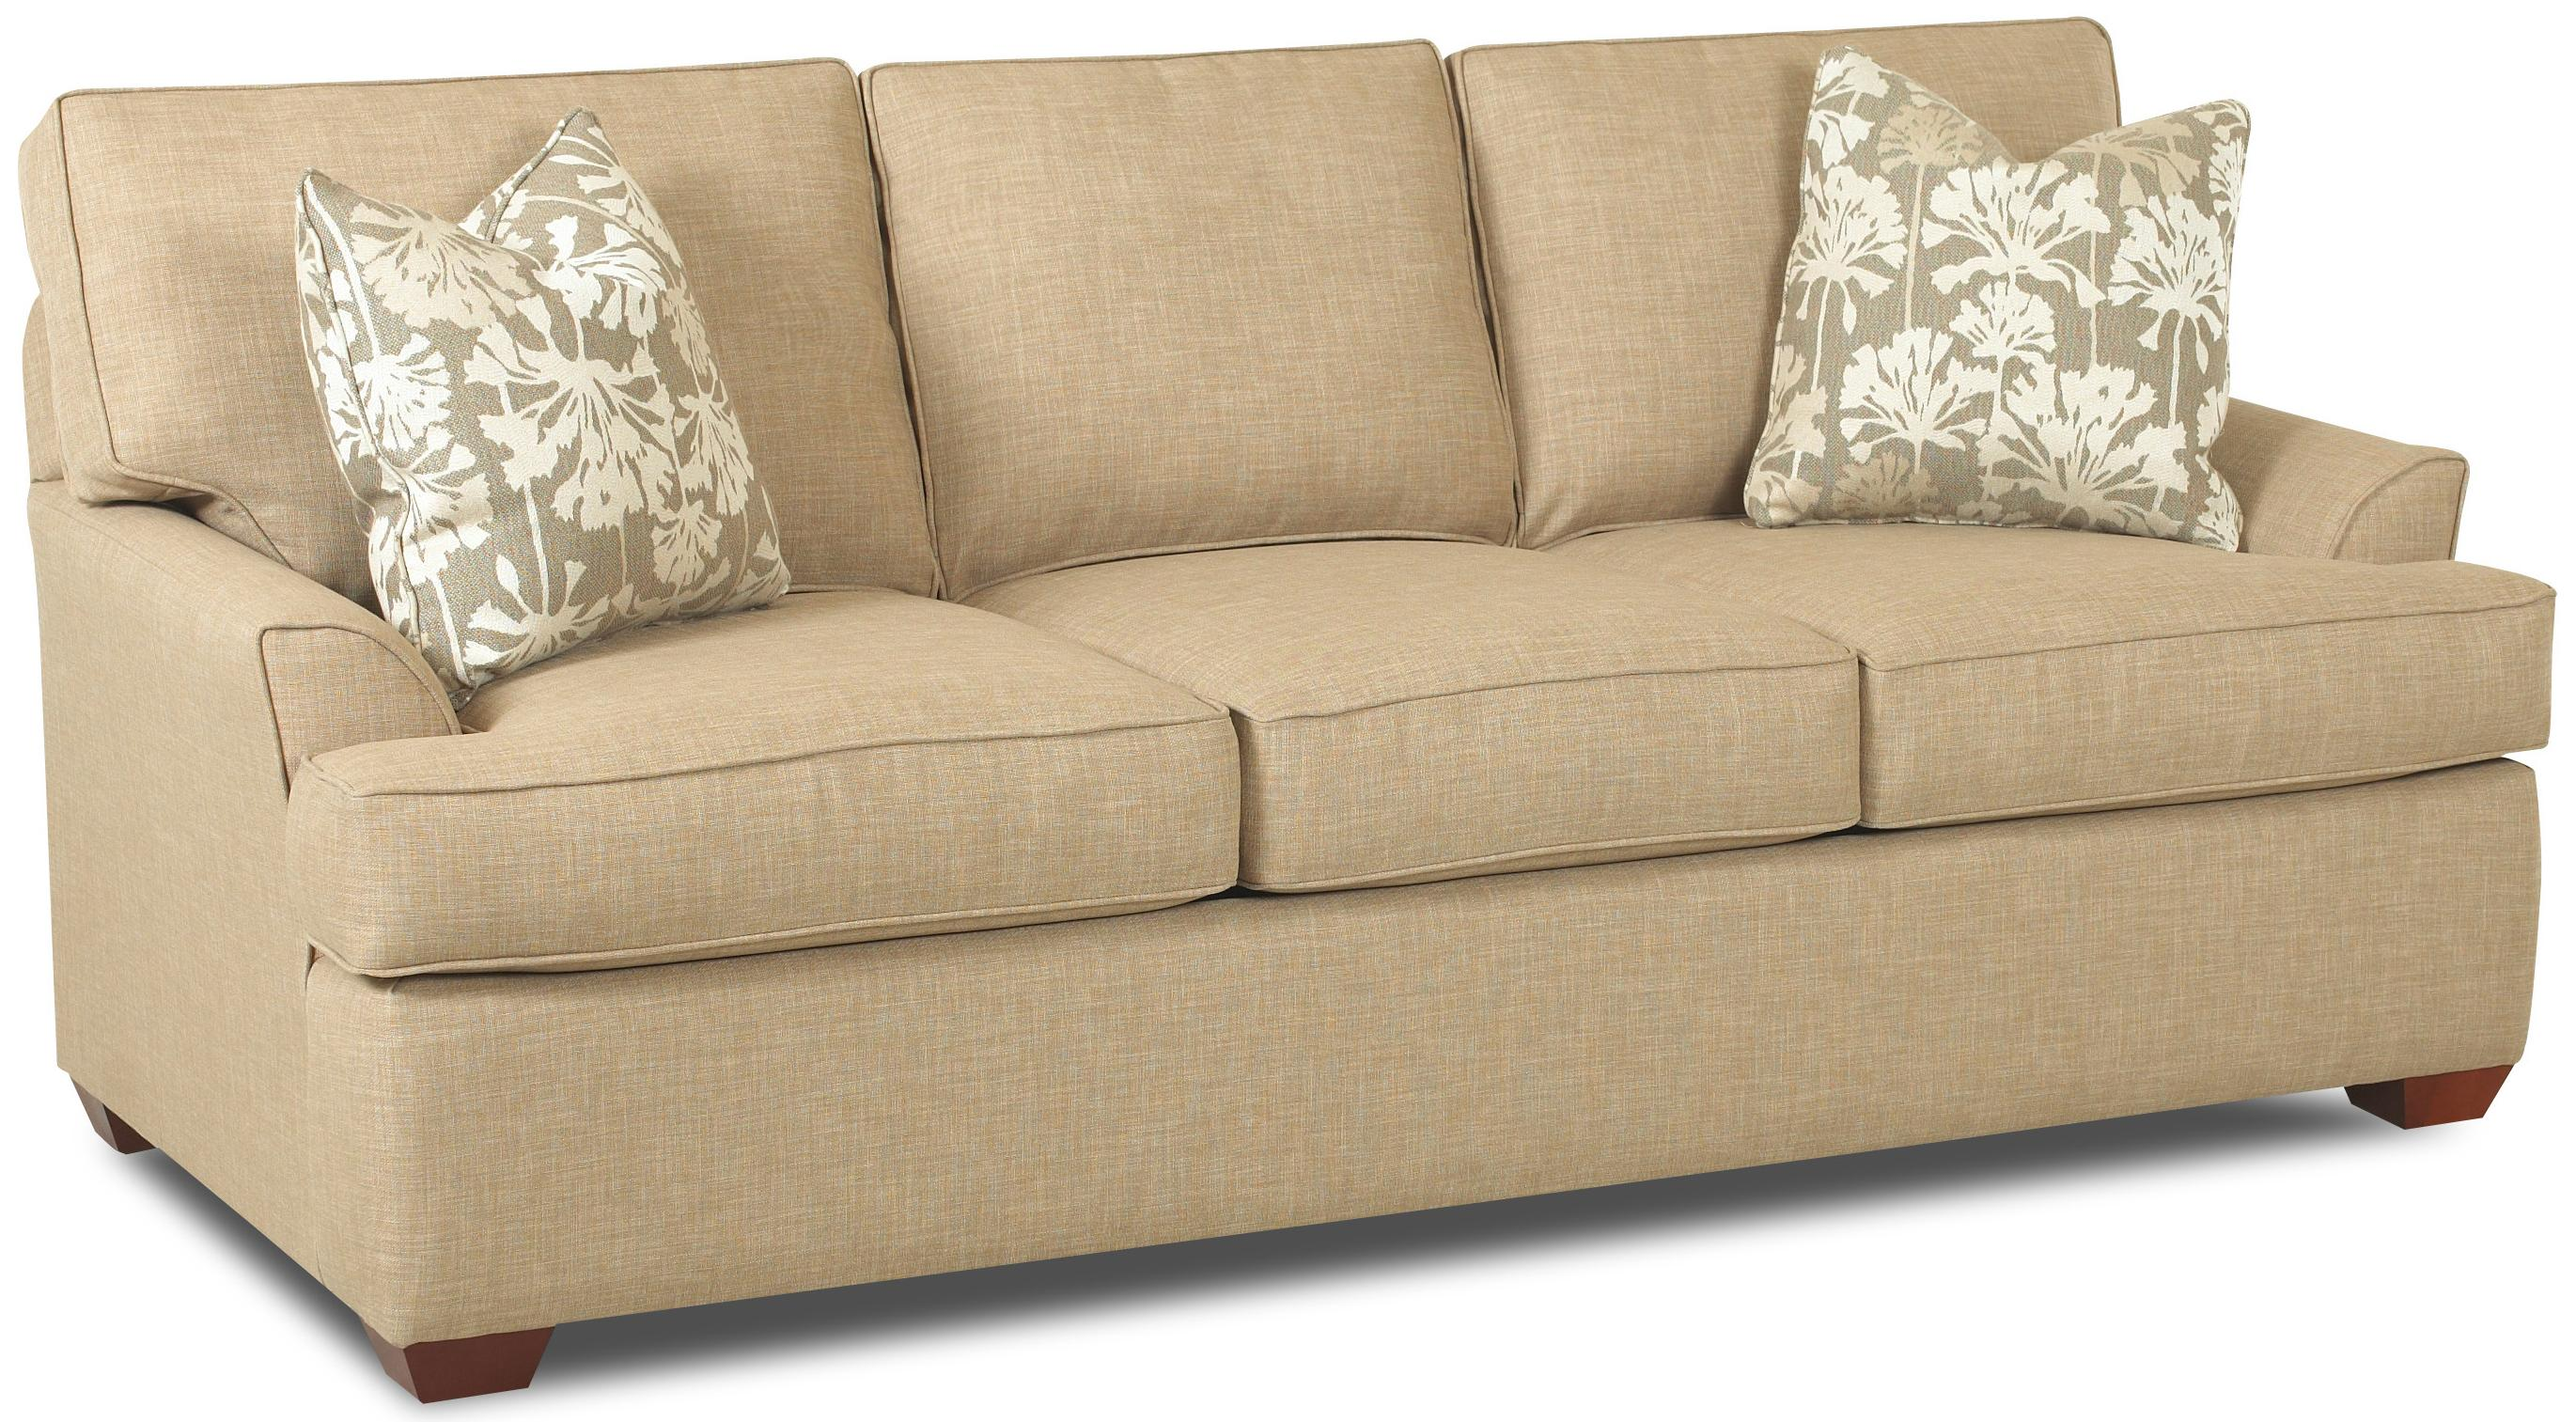 sleeper sofa no arms photos of living rooms with grey sofas contemporary 3 seat queen innerspring